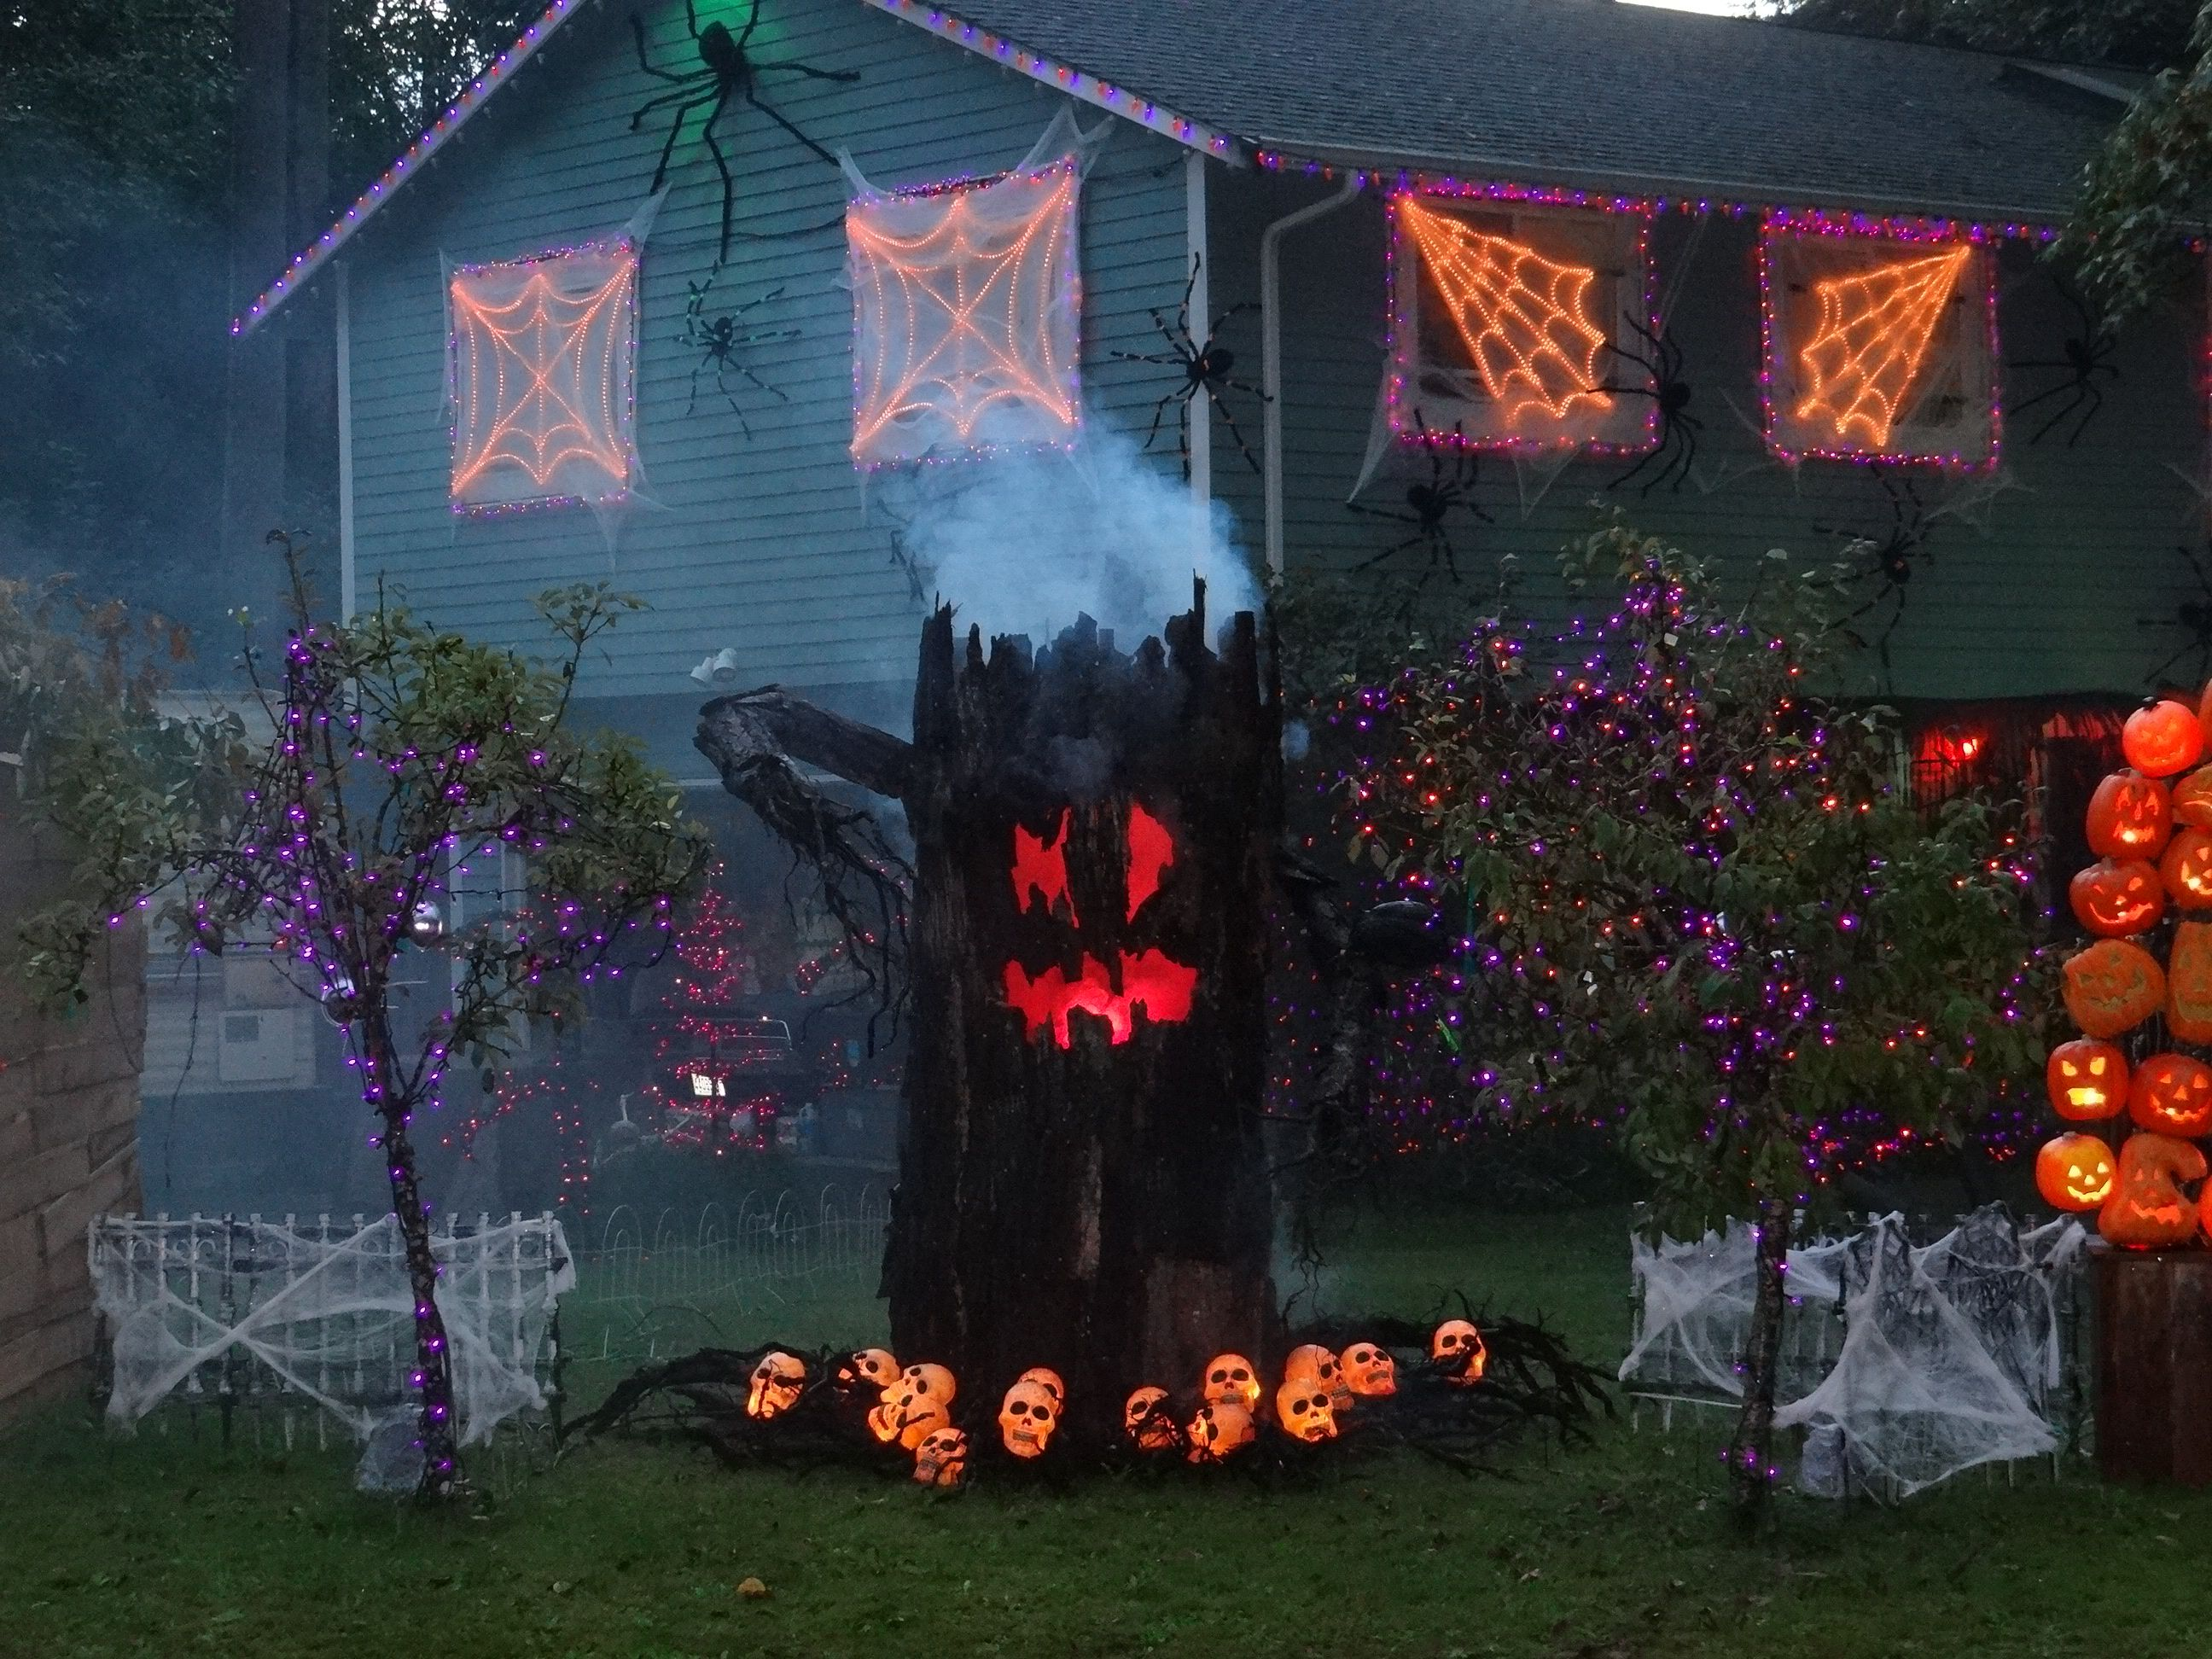 decoration cool decorating halloween outdoor with scary black tree and spyder also pumpkins for halloween outdoor design ideas wonderful halloween outdoor - Easy To Make Halloween Decorations For Outside